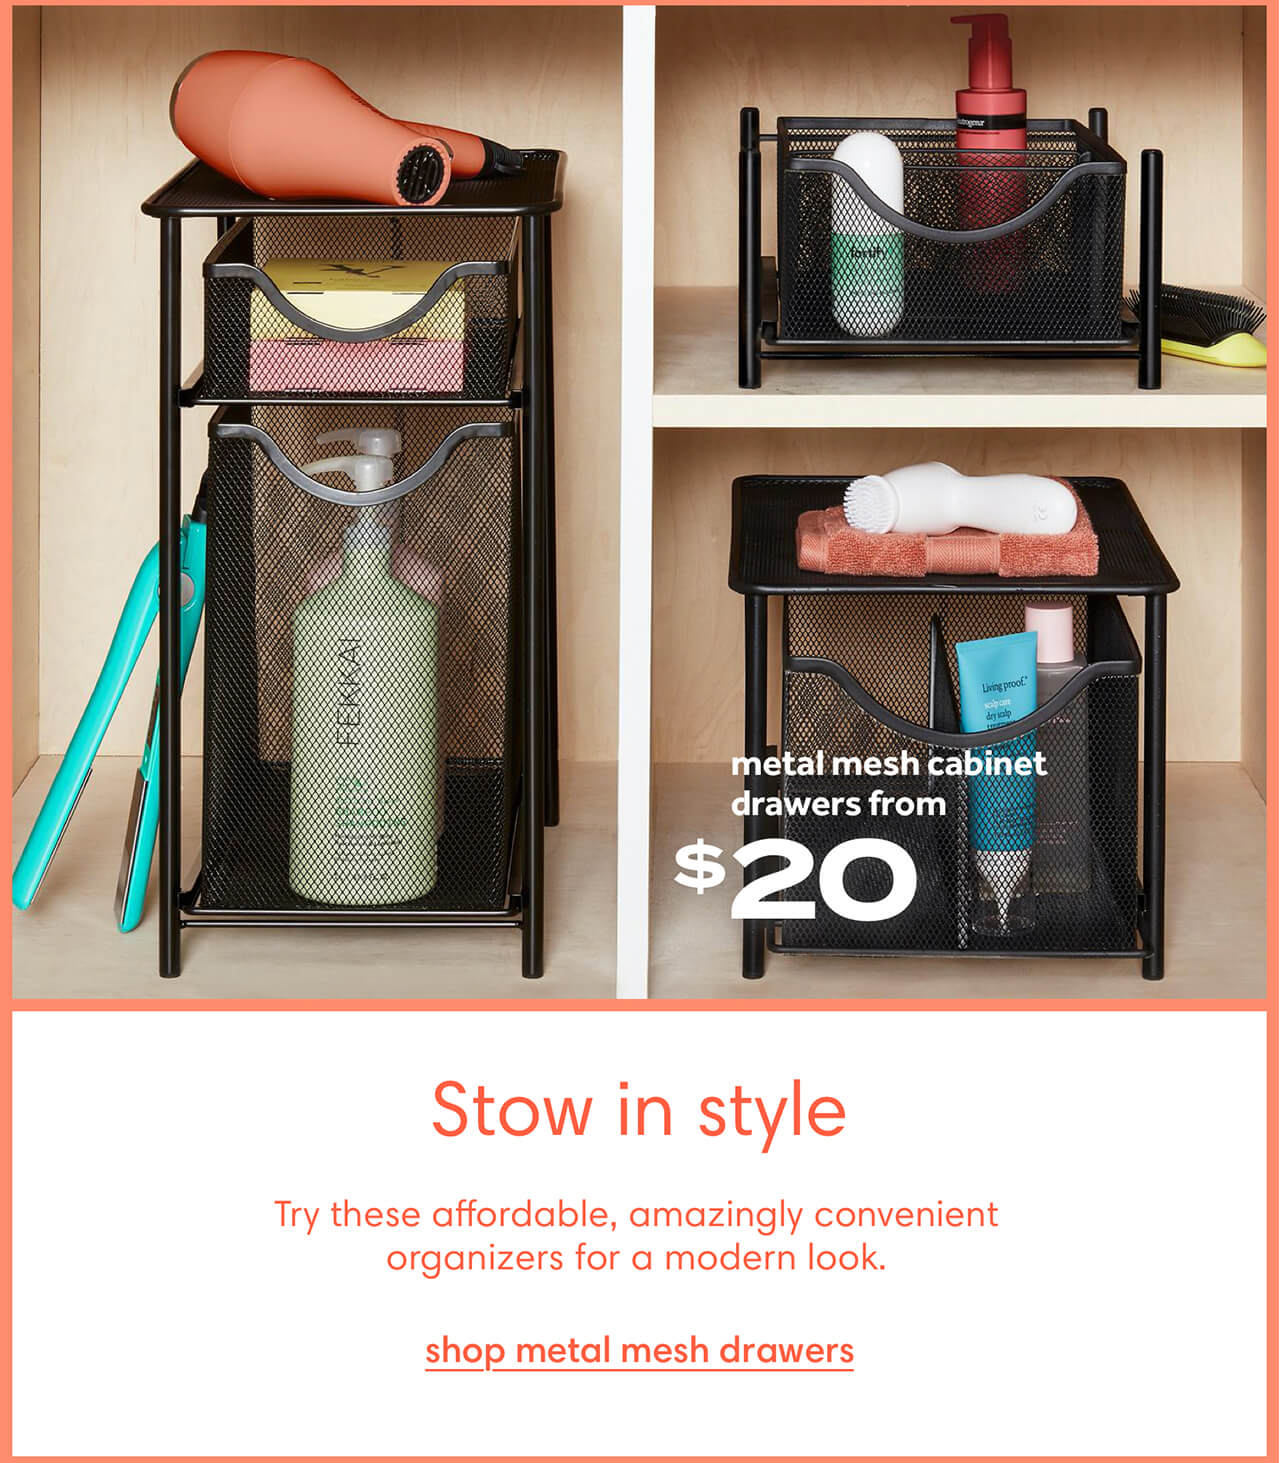 Stow in style try these affordable, amazingly convenient organizers for a modern look. Shop metal mesh drawers